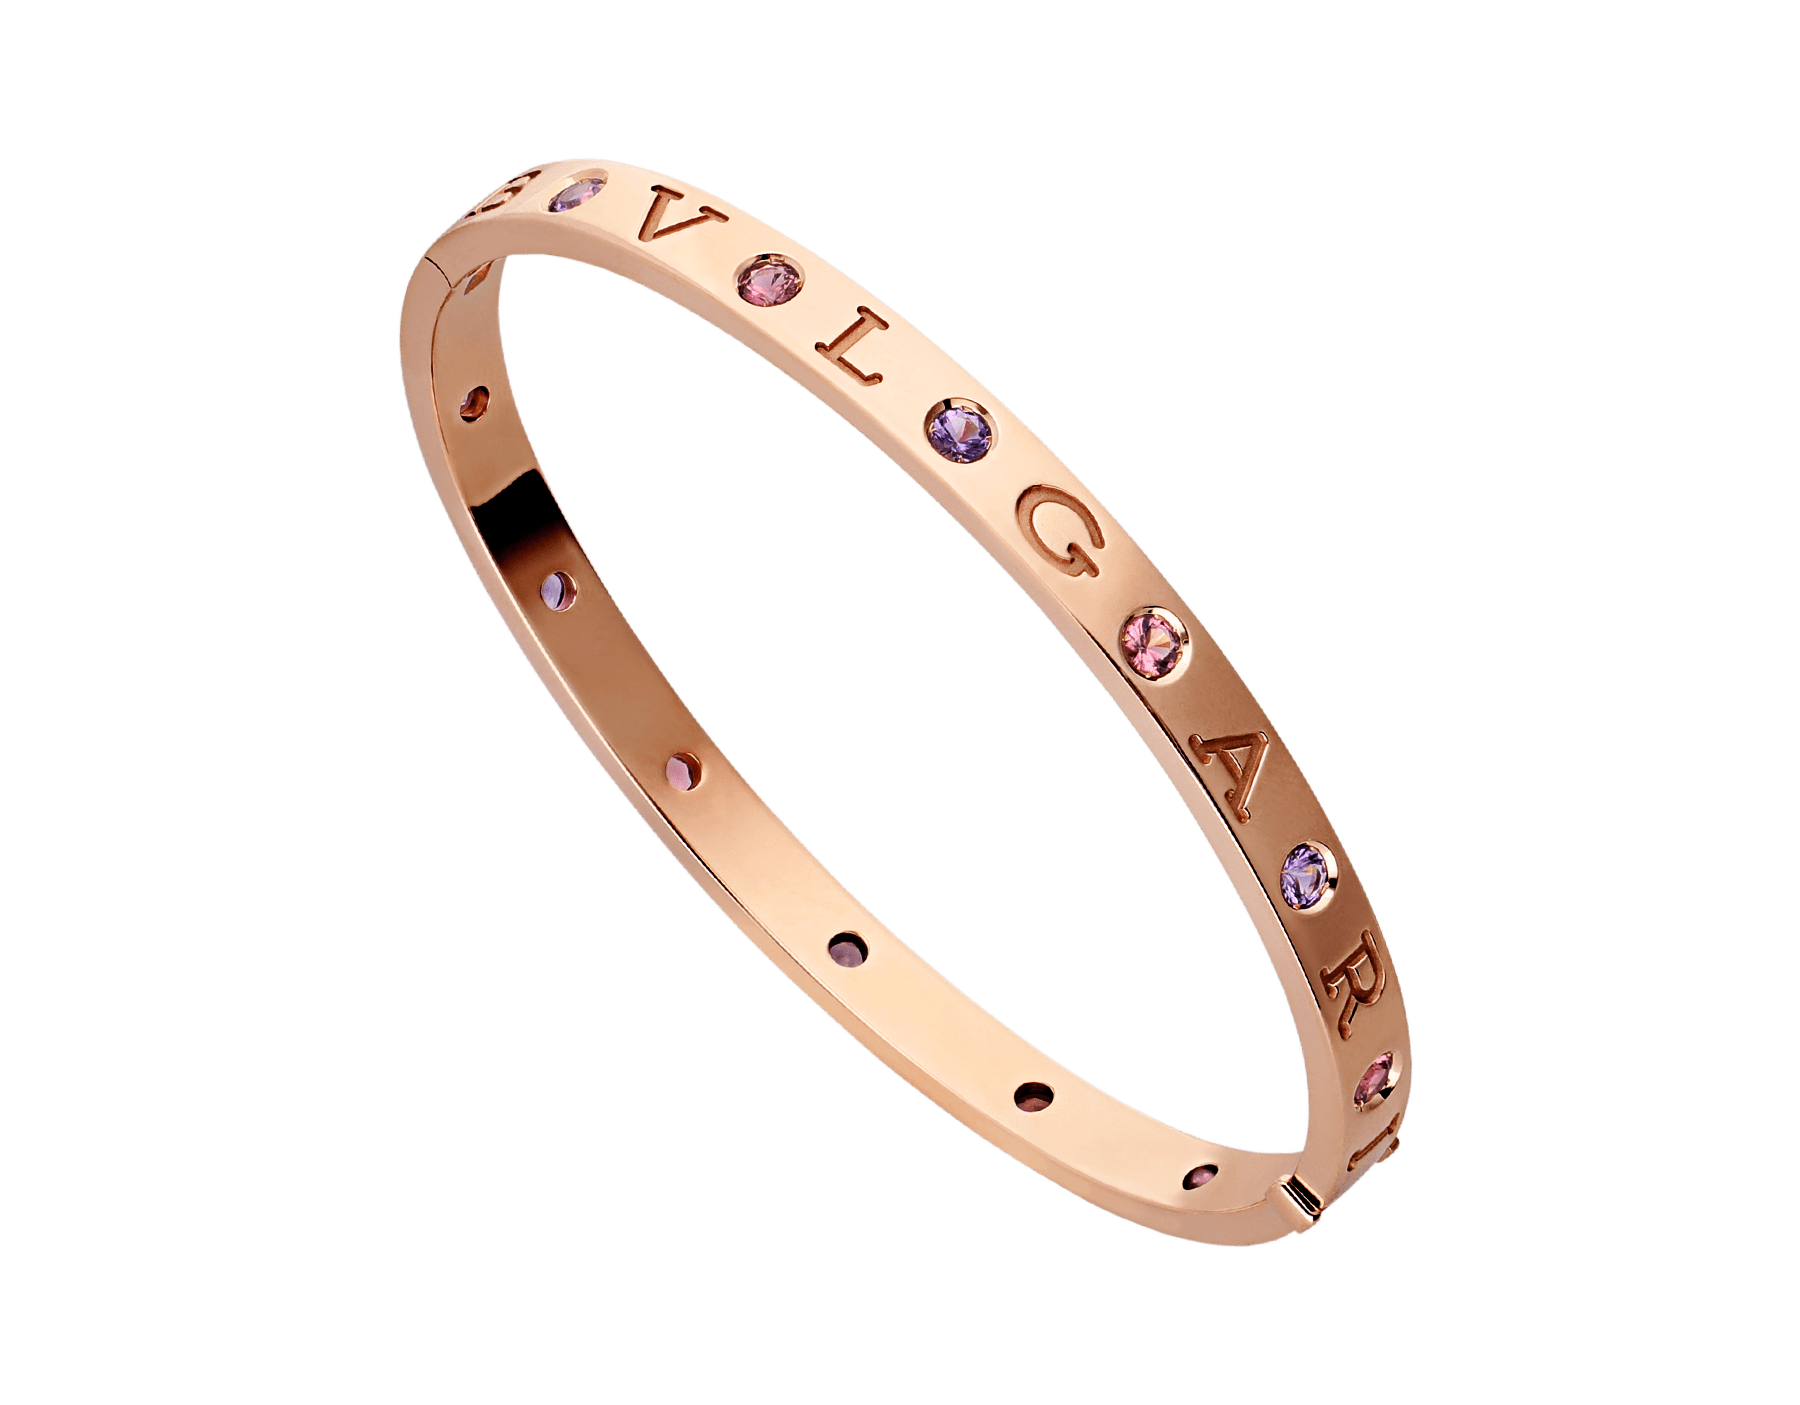 BVLGARI BVLGARI 18 kt rose gold bangle bracelet set with six amethysts and six pink tourmalines BR857613 image 1